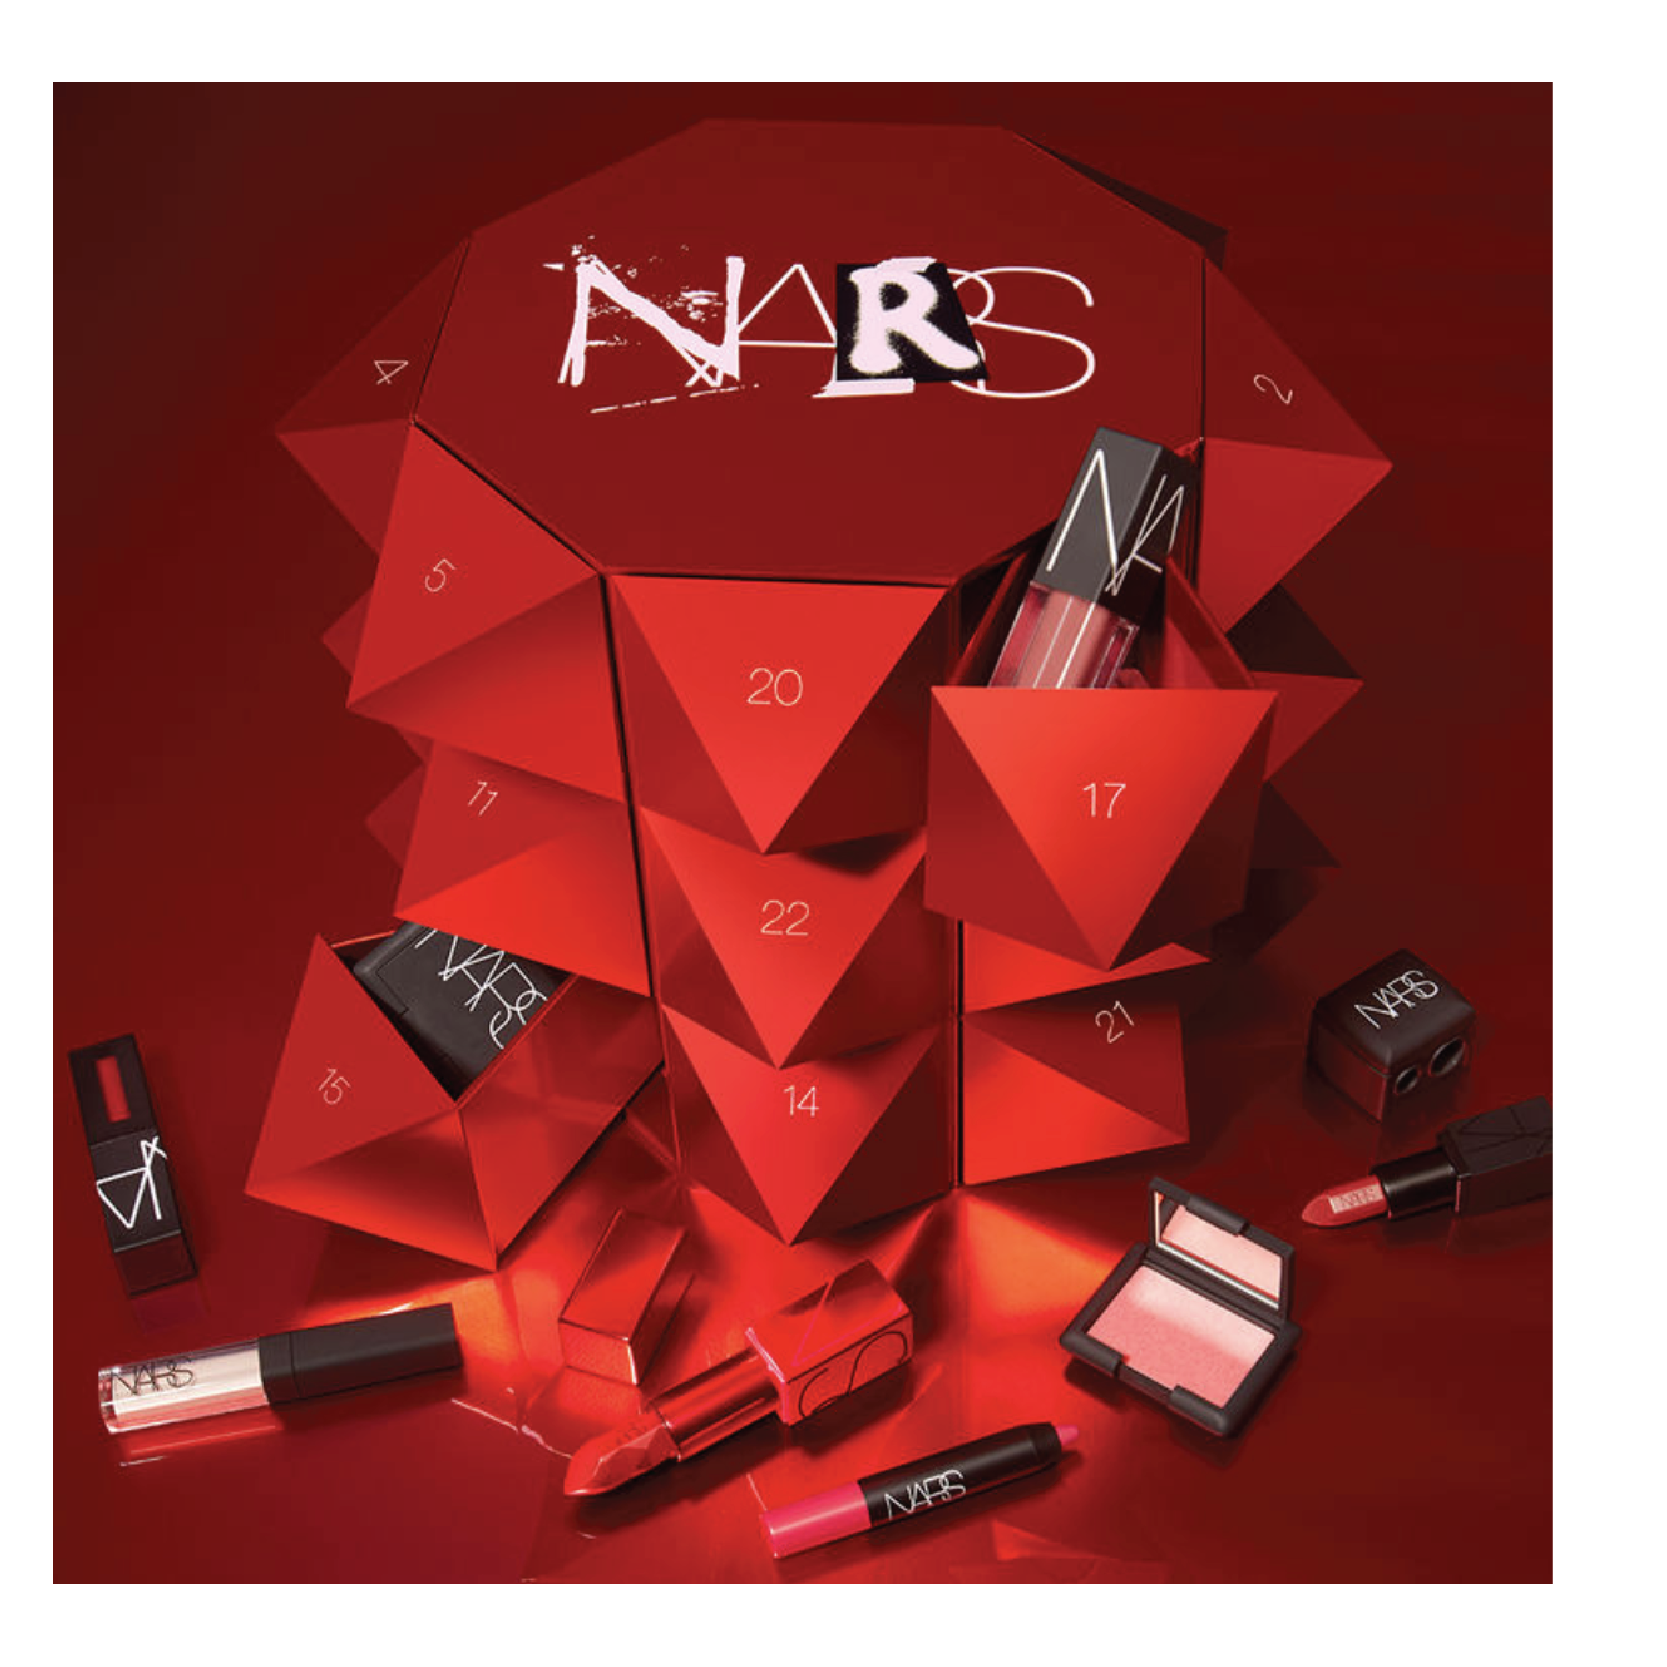 NARS Uncensored Advent Calendar - $150 at NARSThis has the best of the best of NARS in the coolest packaging.